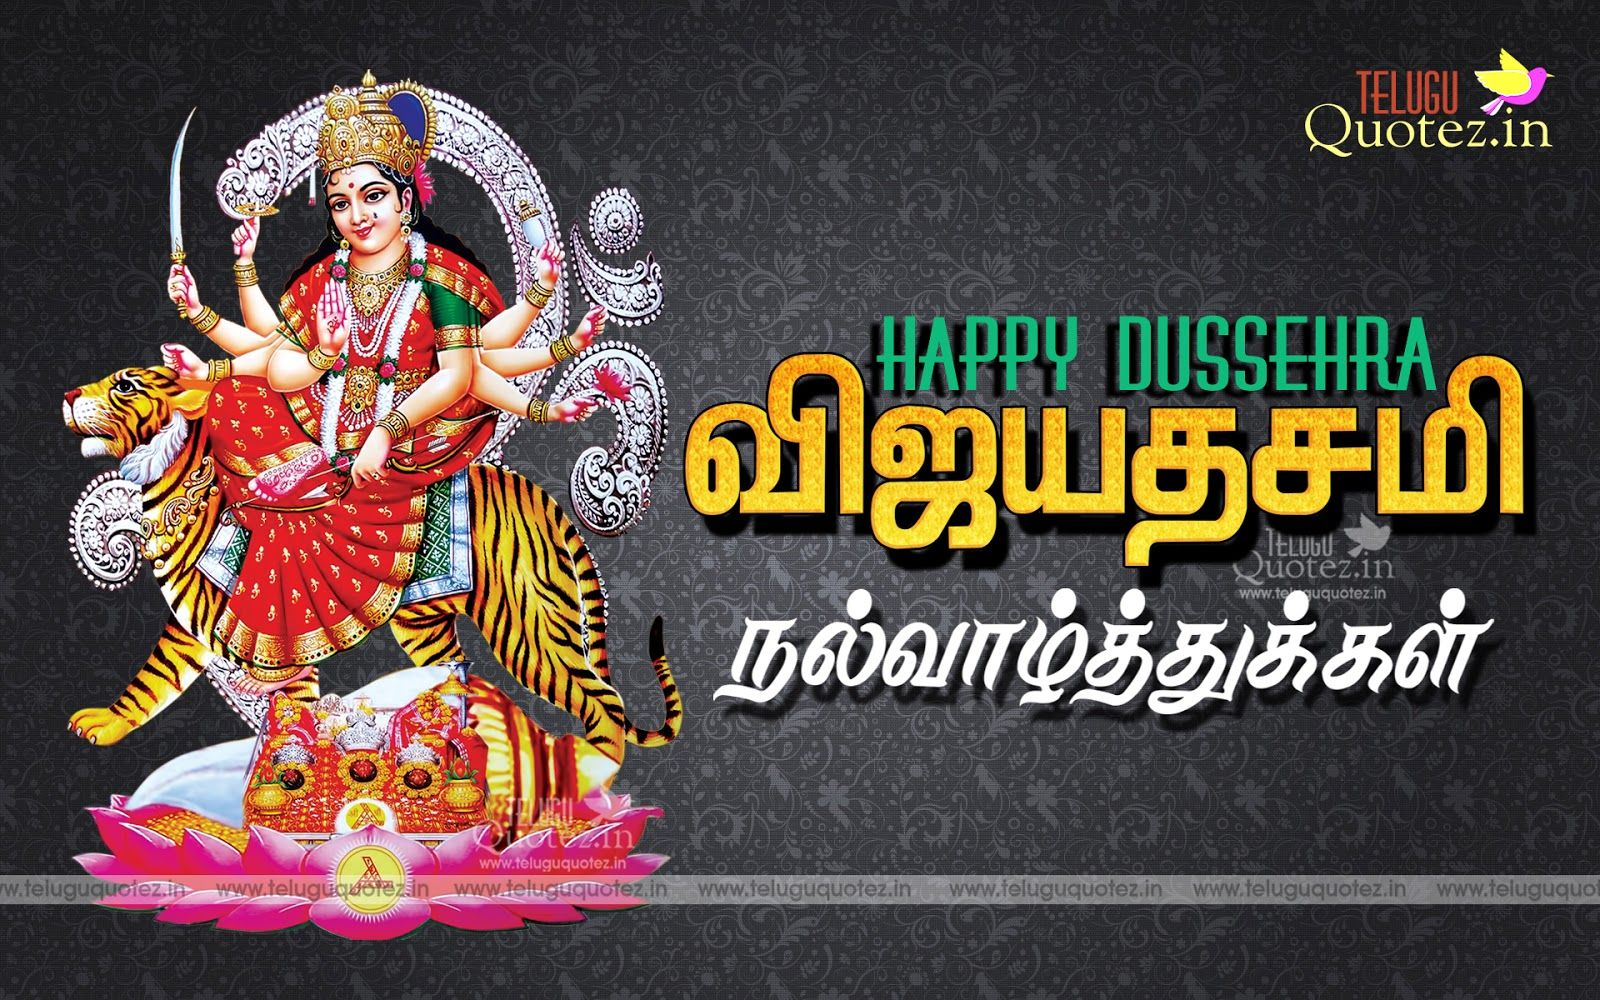 Happy dussehra tamil kavithai quotes and greetings images happy dussehra tamil kavithai quotes and greetings images teluguquotez telugu quotes m4hsunfo